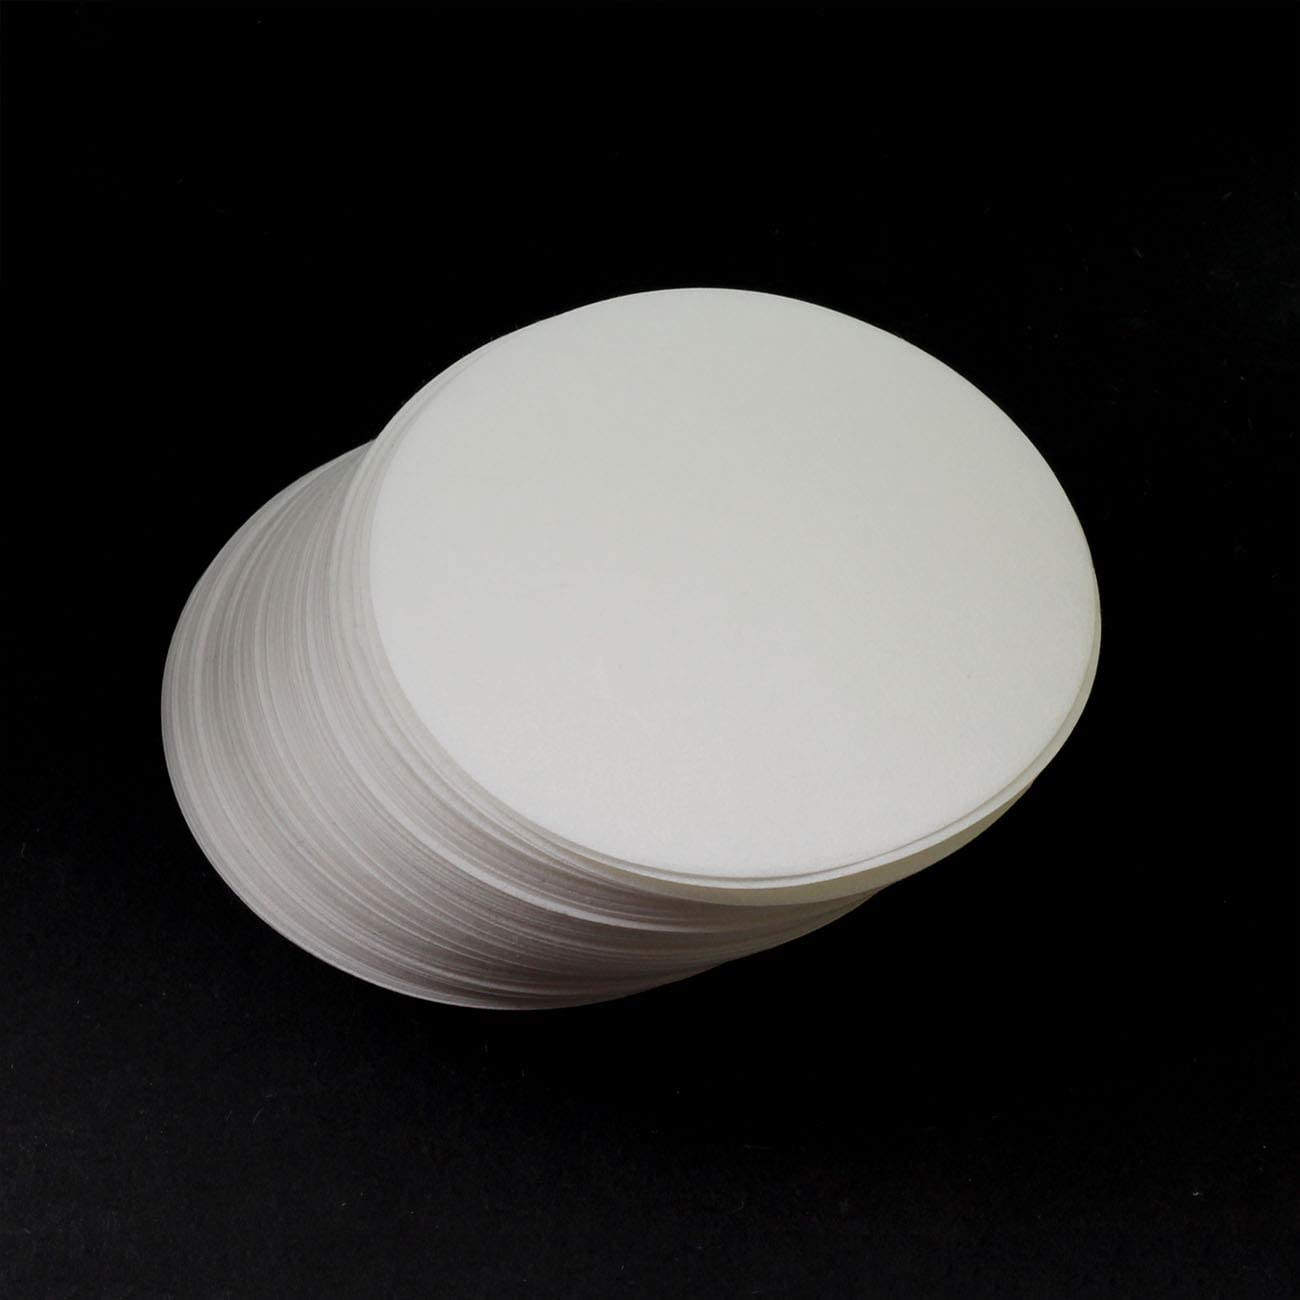 PZRT 1-Pack 9cm Qualitative Filter Paper Fast Speed Round Laboratory Filter Paper Chemical Analysis Industrial Oil Testing Funnel Filter Paper